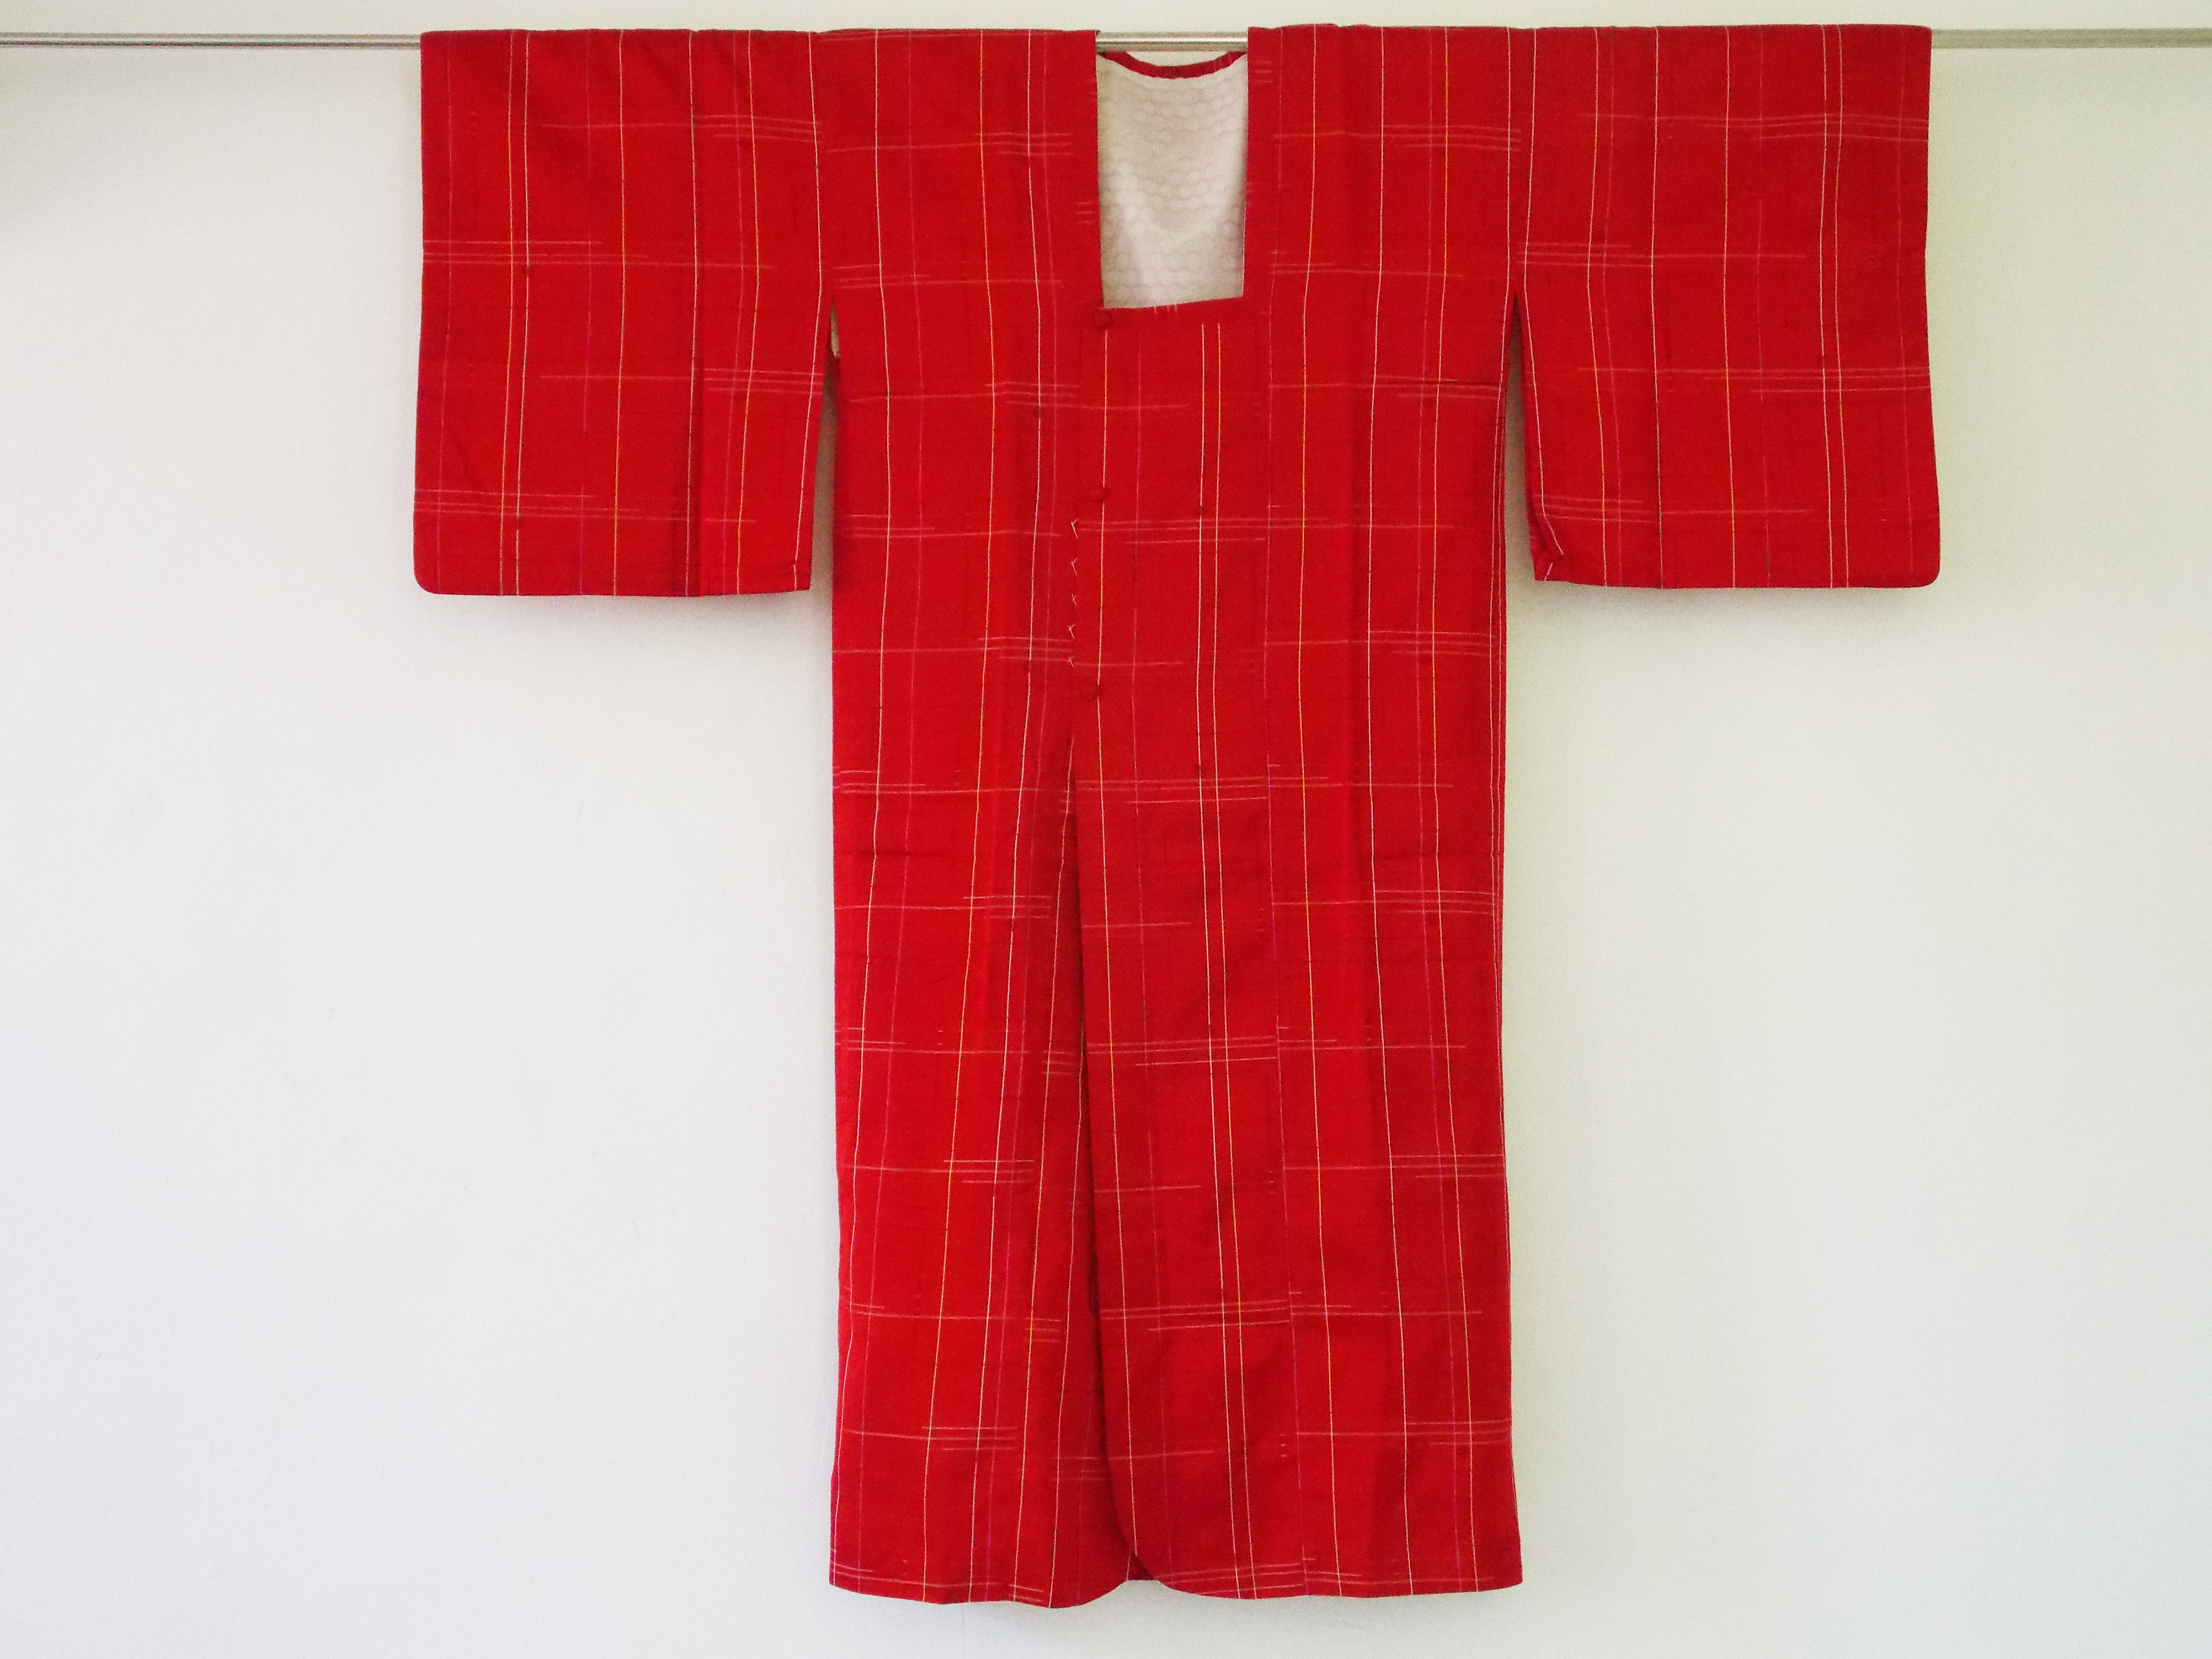 SOIE_Haori_long_rouge-120€